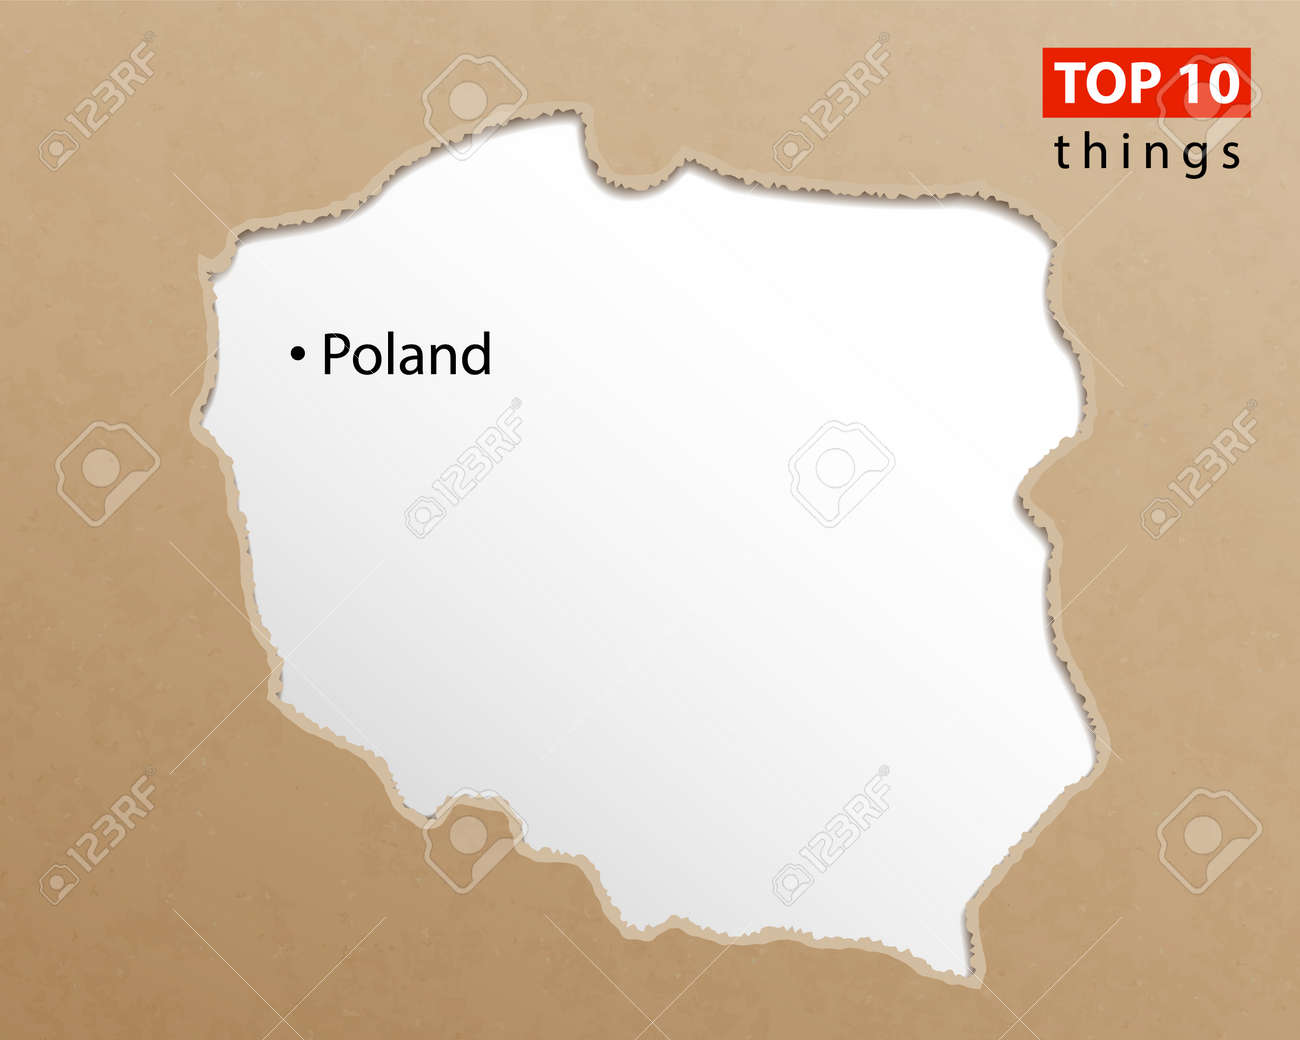 Poland map vector  Polish maps craft paper texture  Empty template